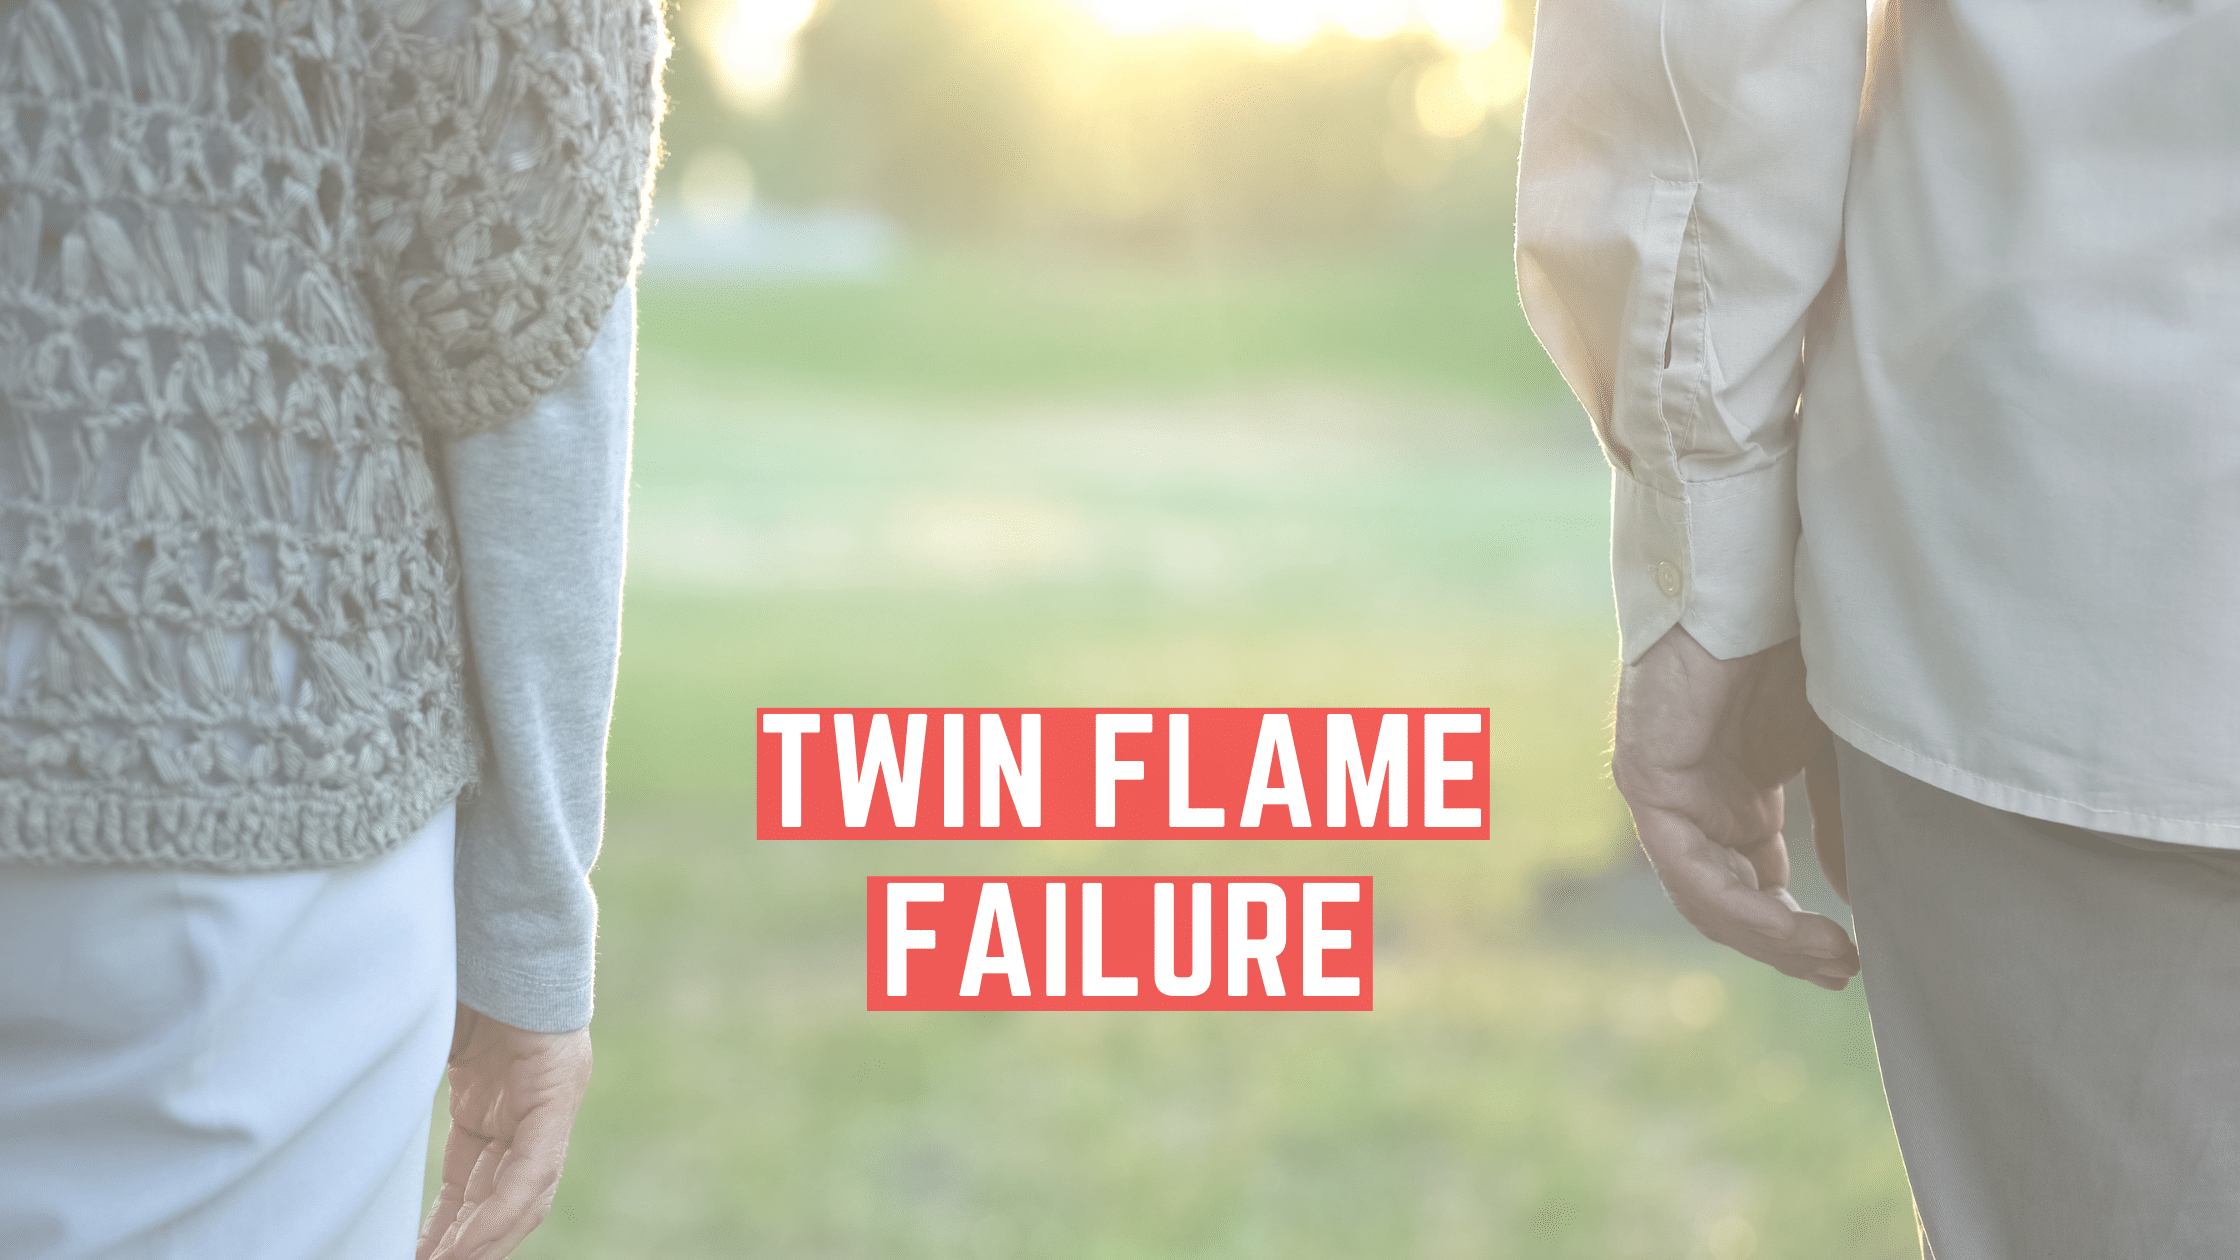 twin flame failure